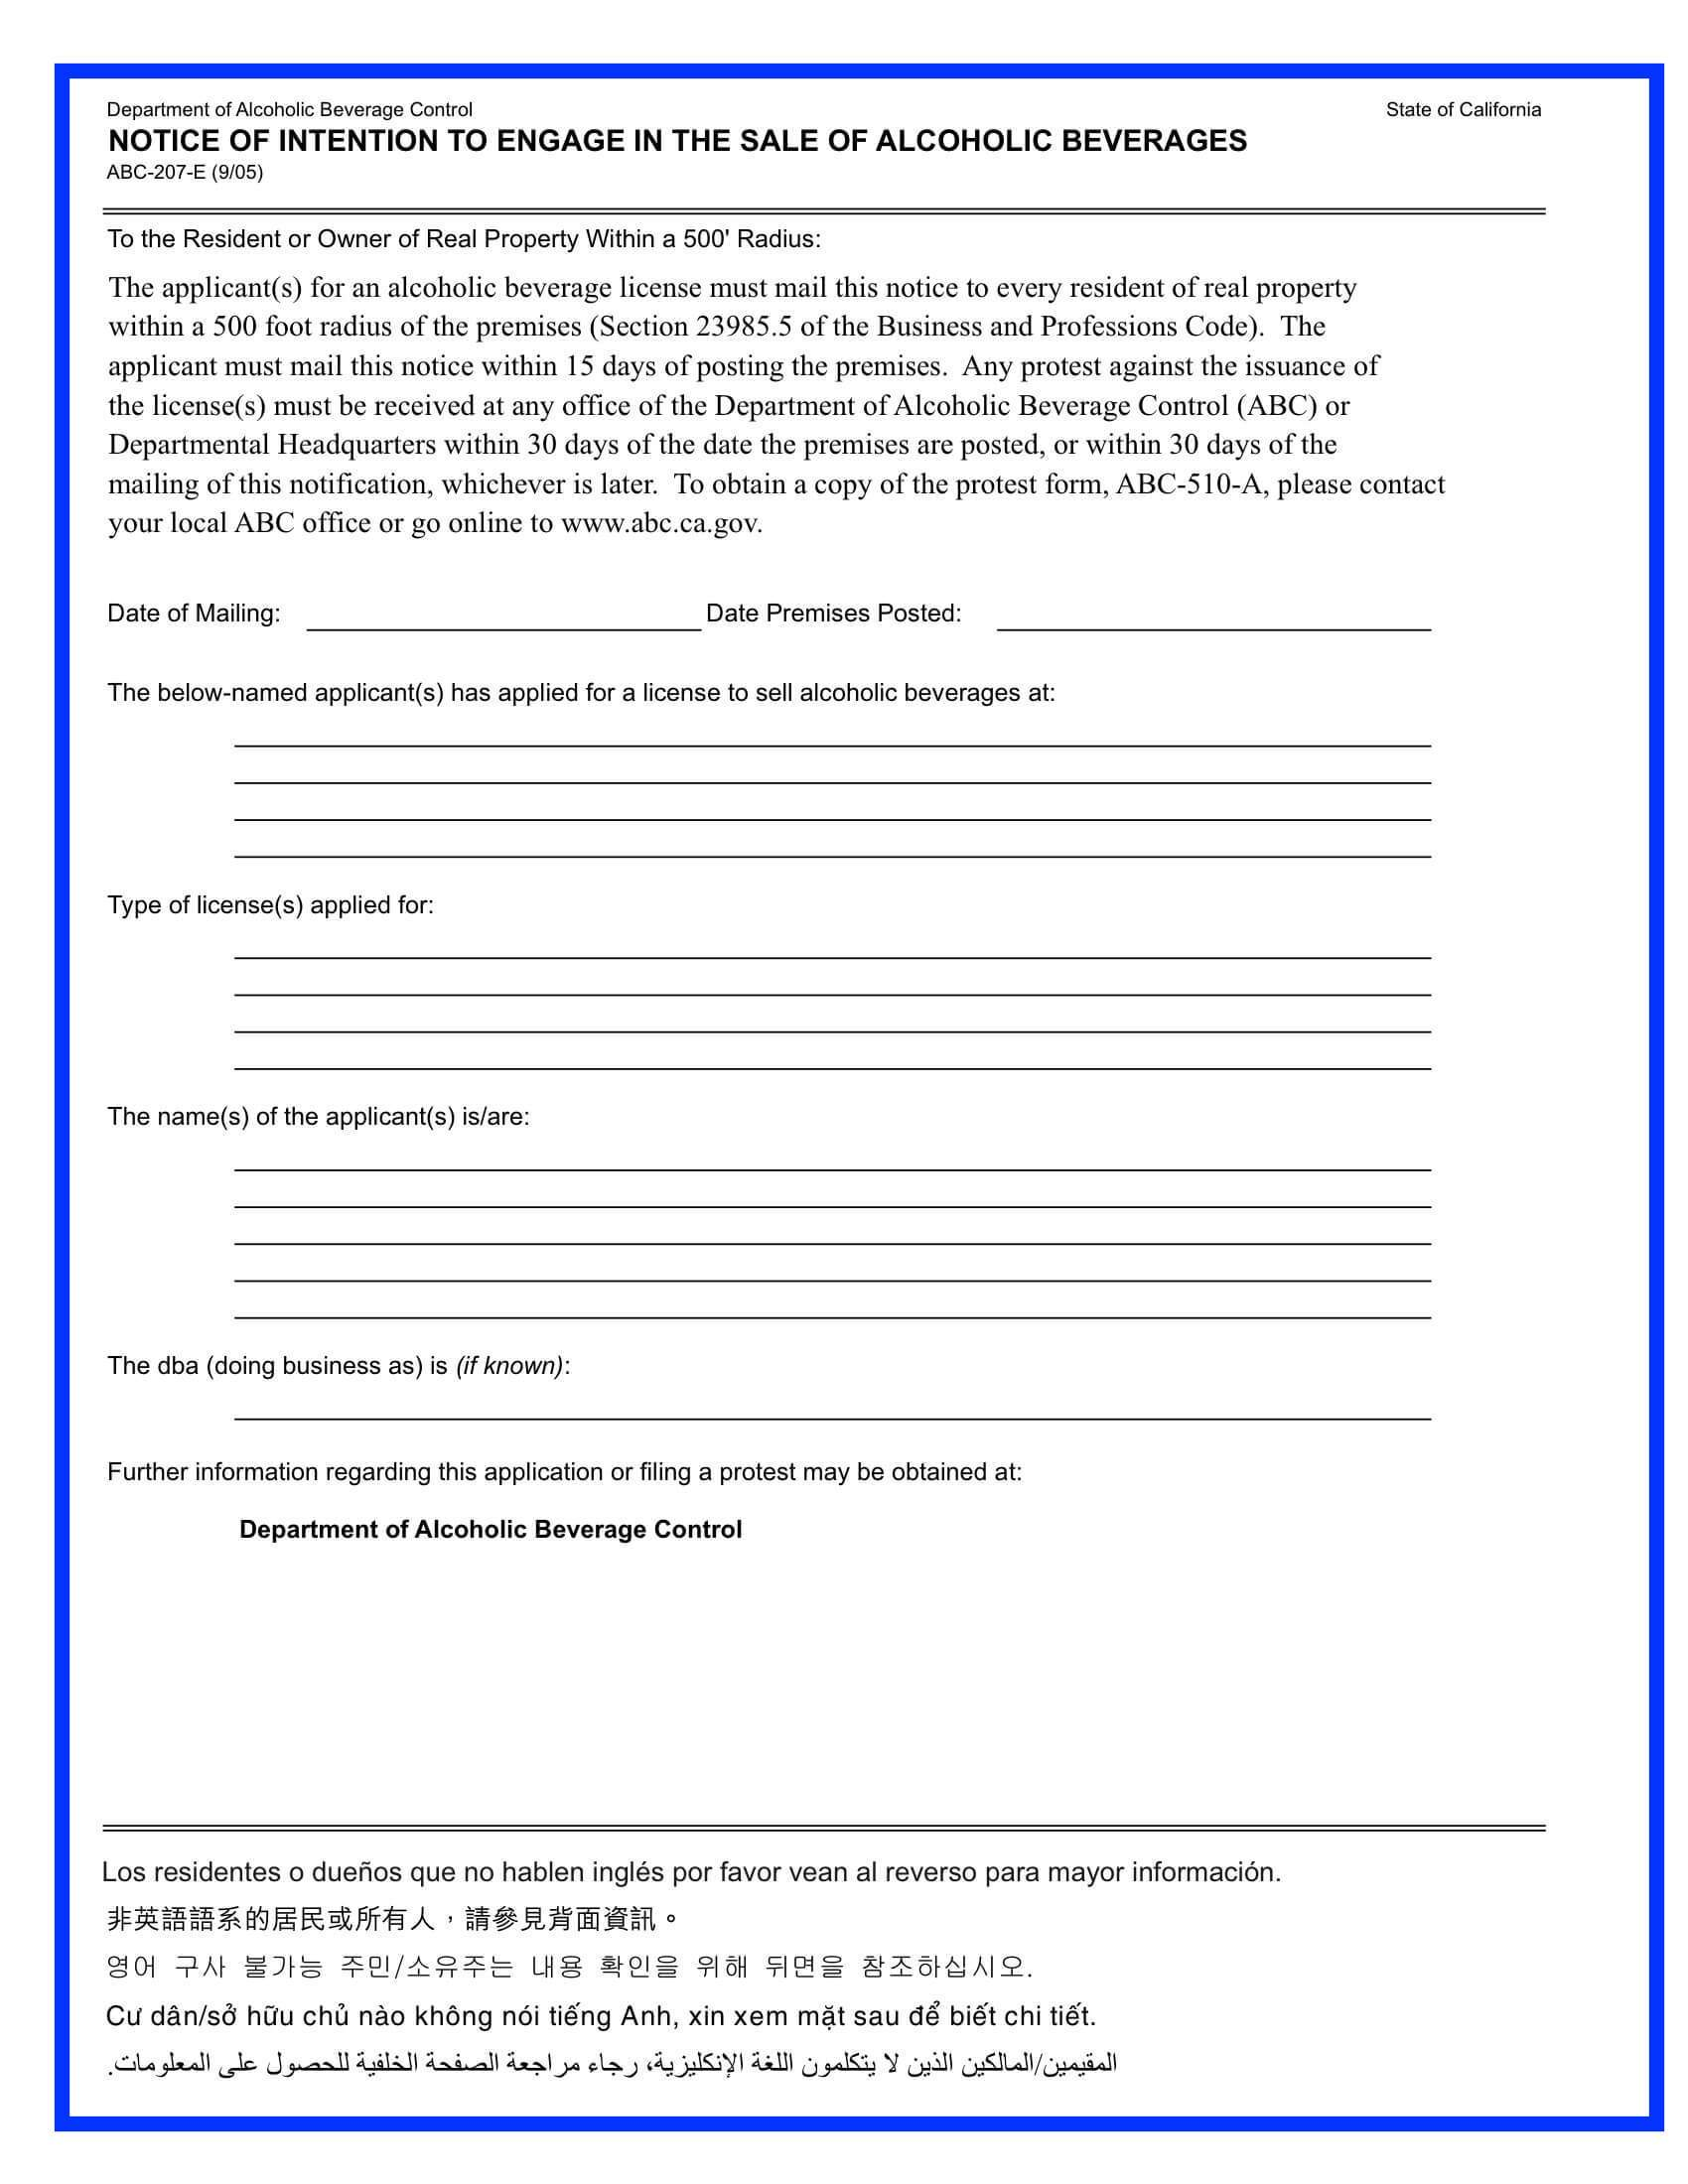 ABC 207E & ABC 207F Department of Alcoholic Beverage Control Mailing to 500' Residents